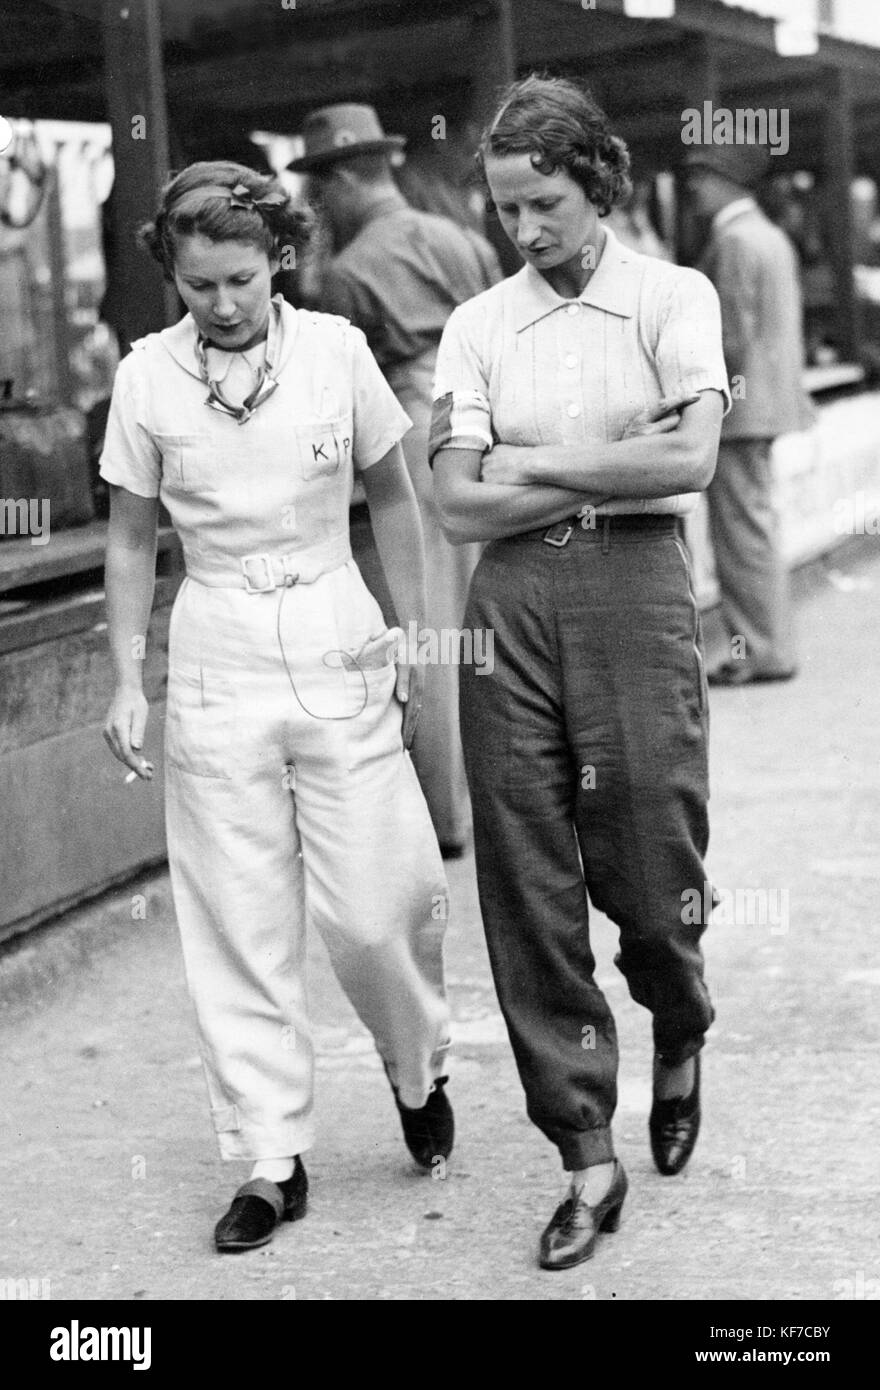 Elsie Wisdom (right) and Kaye Petre at Brooklands - Stock Image